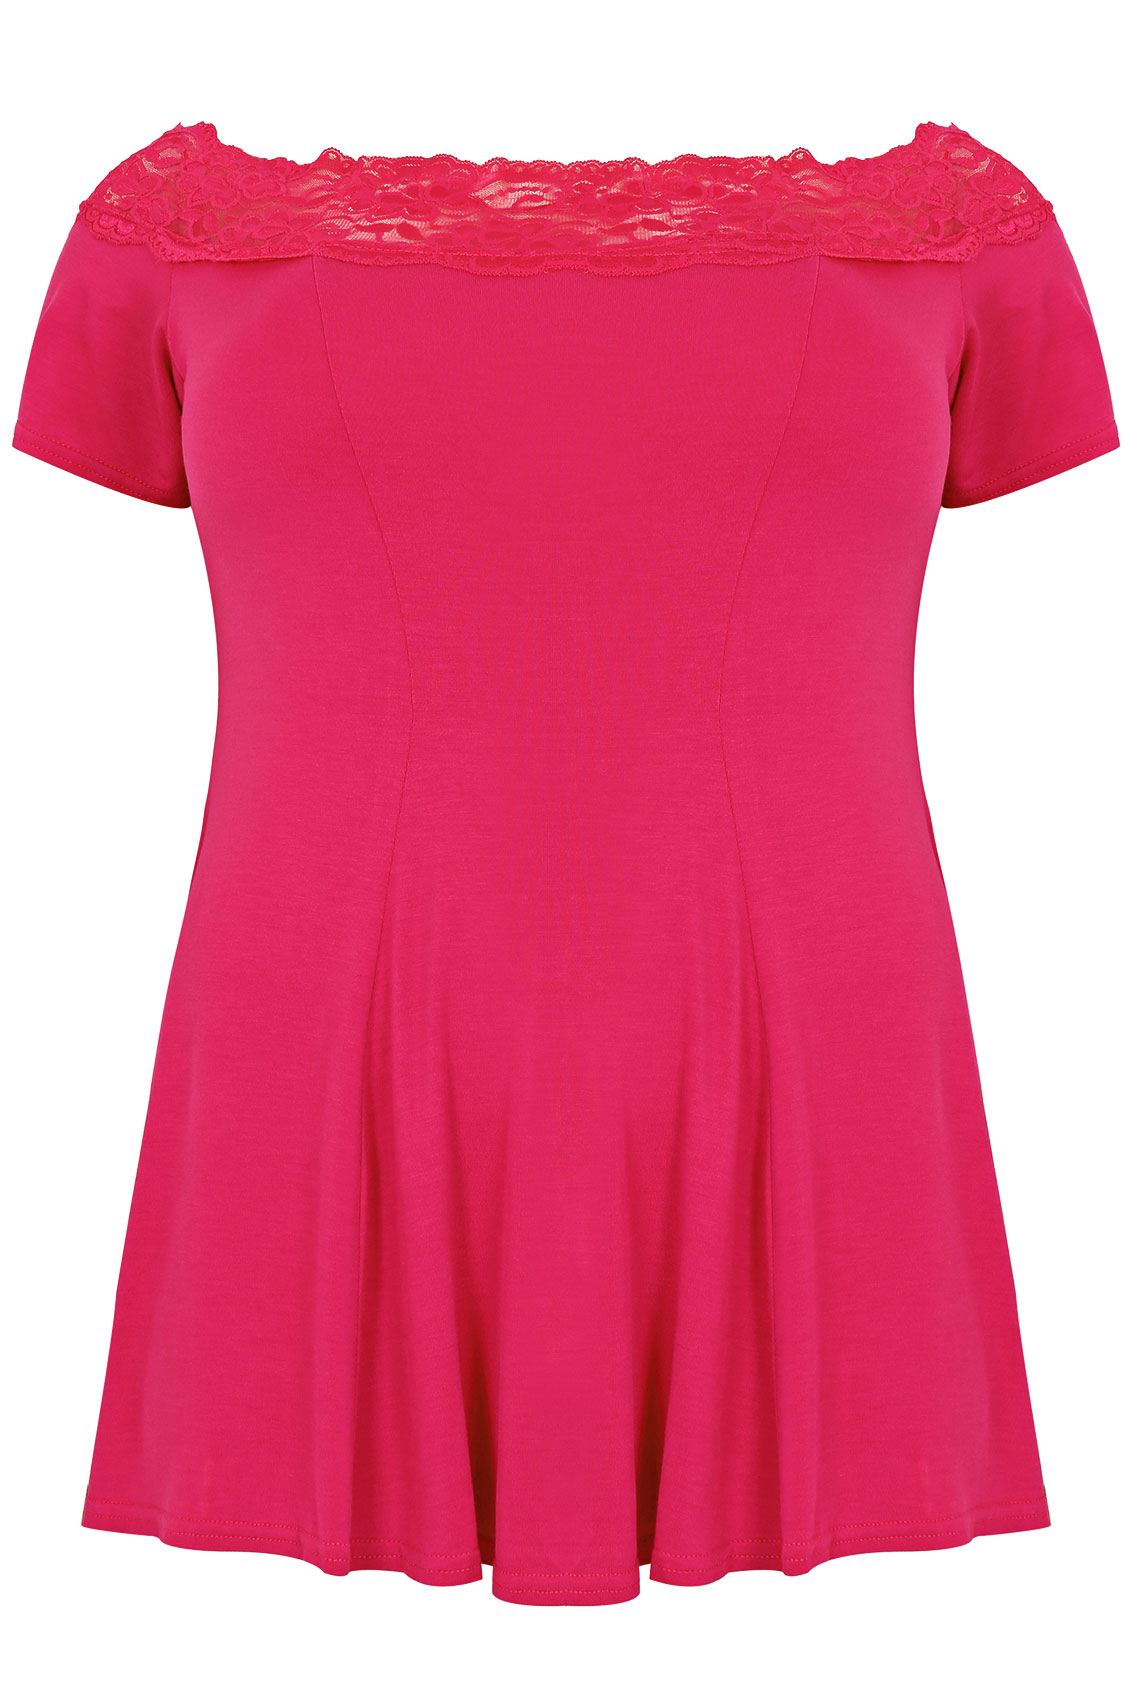 Pink Lace Bardot Top With Short Sleeves Plus size 16,18,20 ...